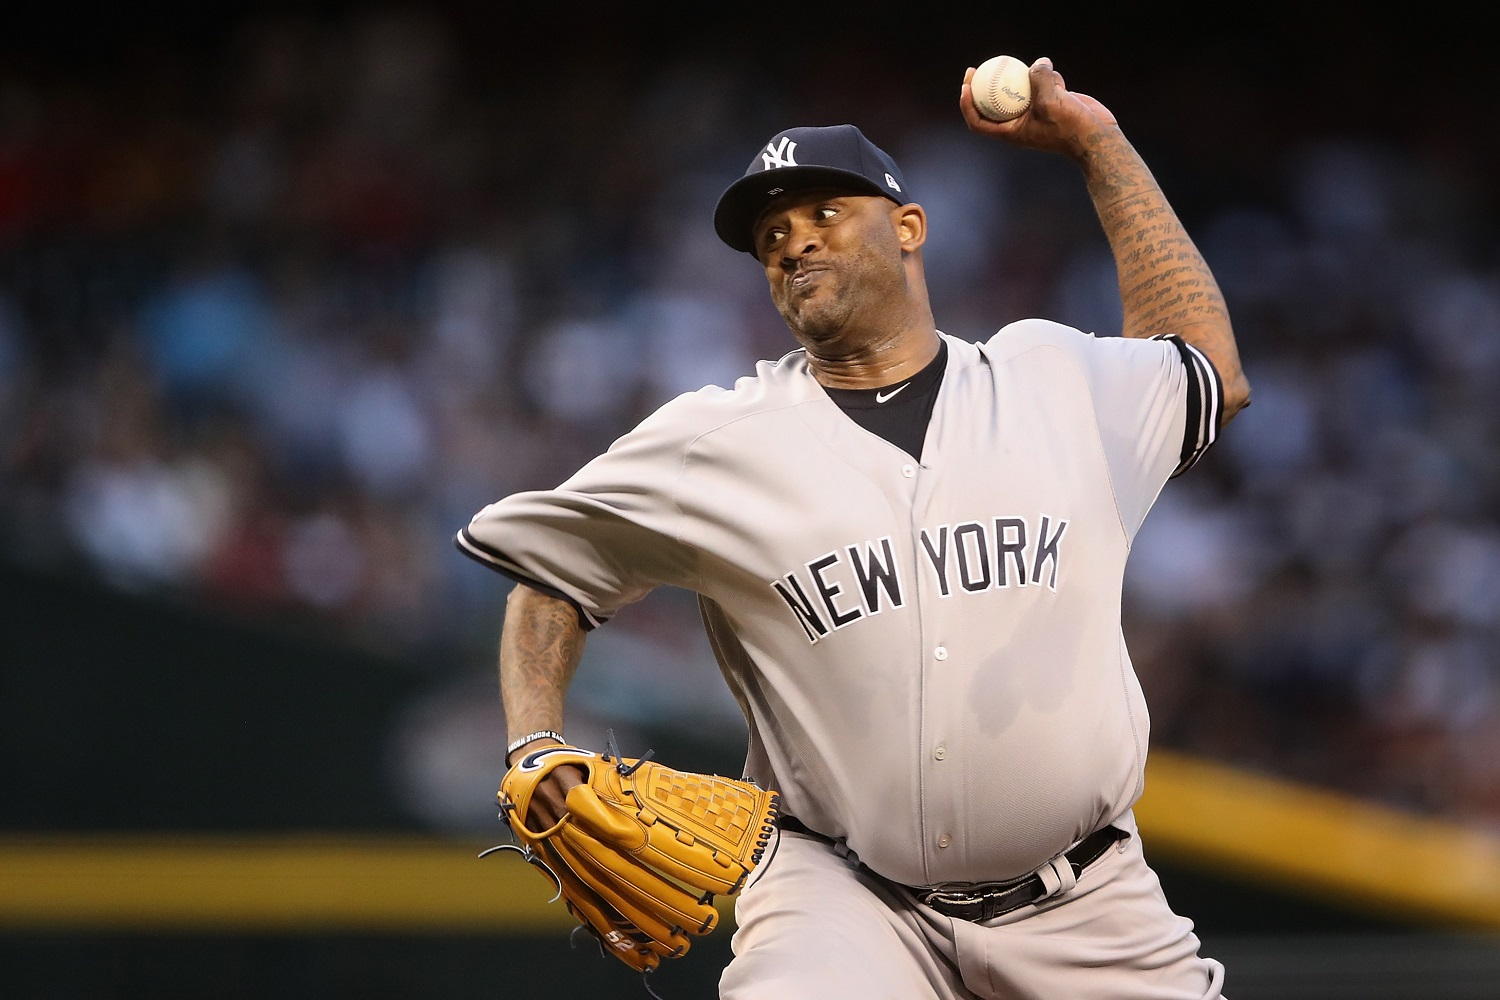 Yankees Great CC Sabathia Has Returned to the Diamond to Live Out His Dream